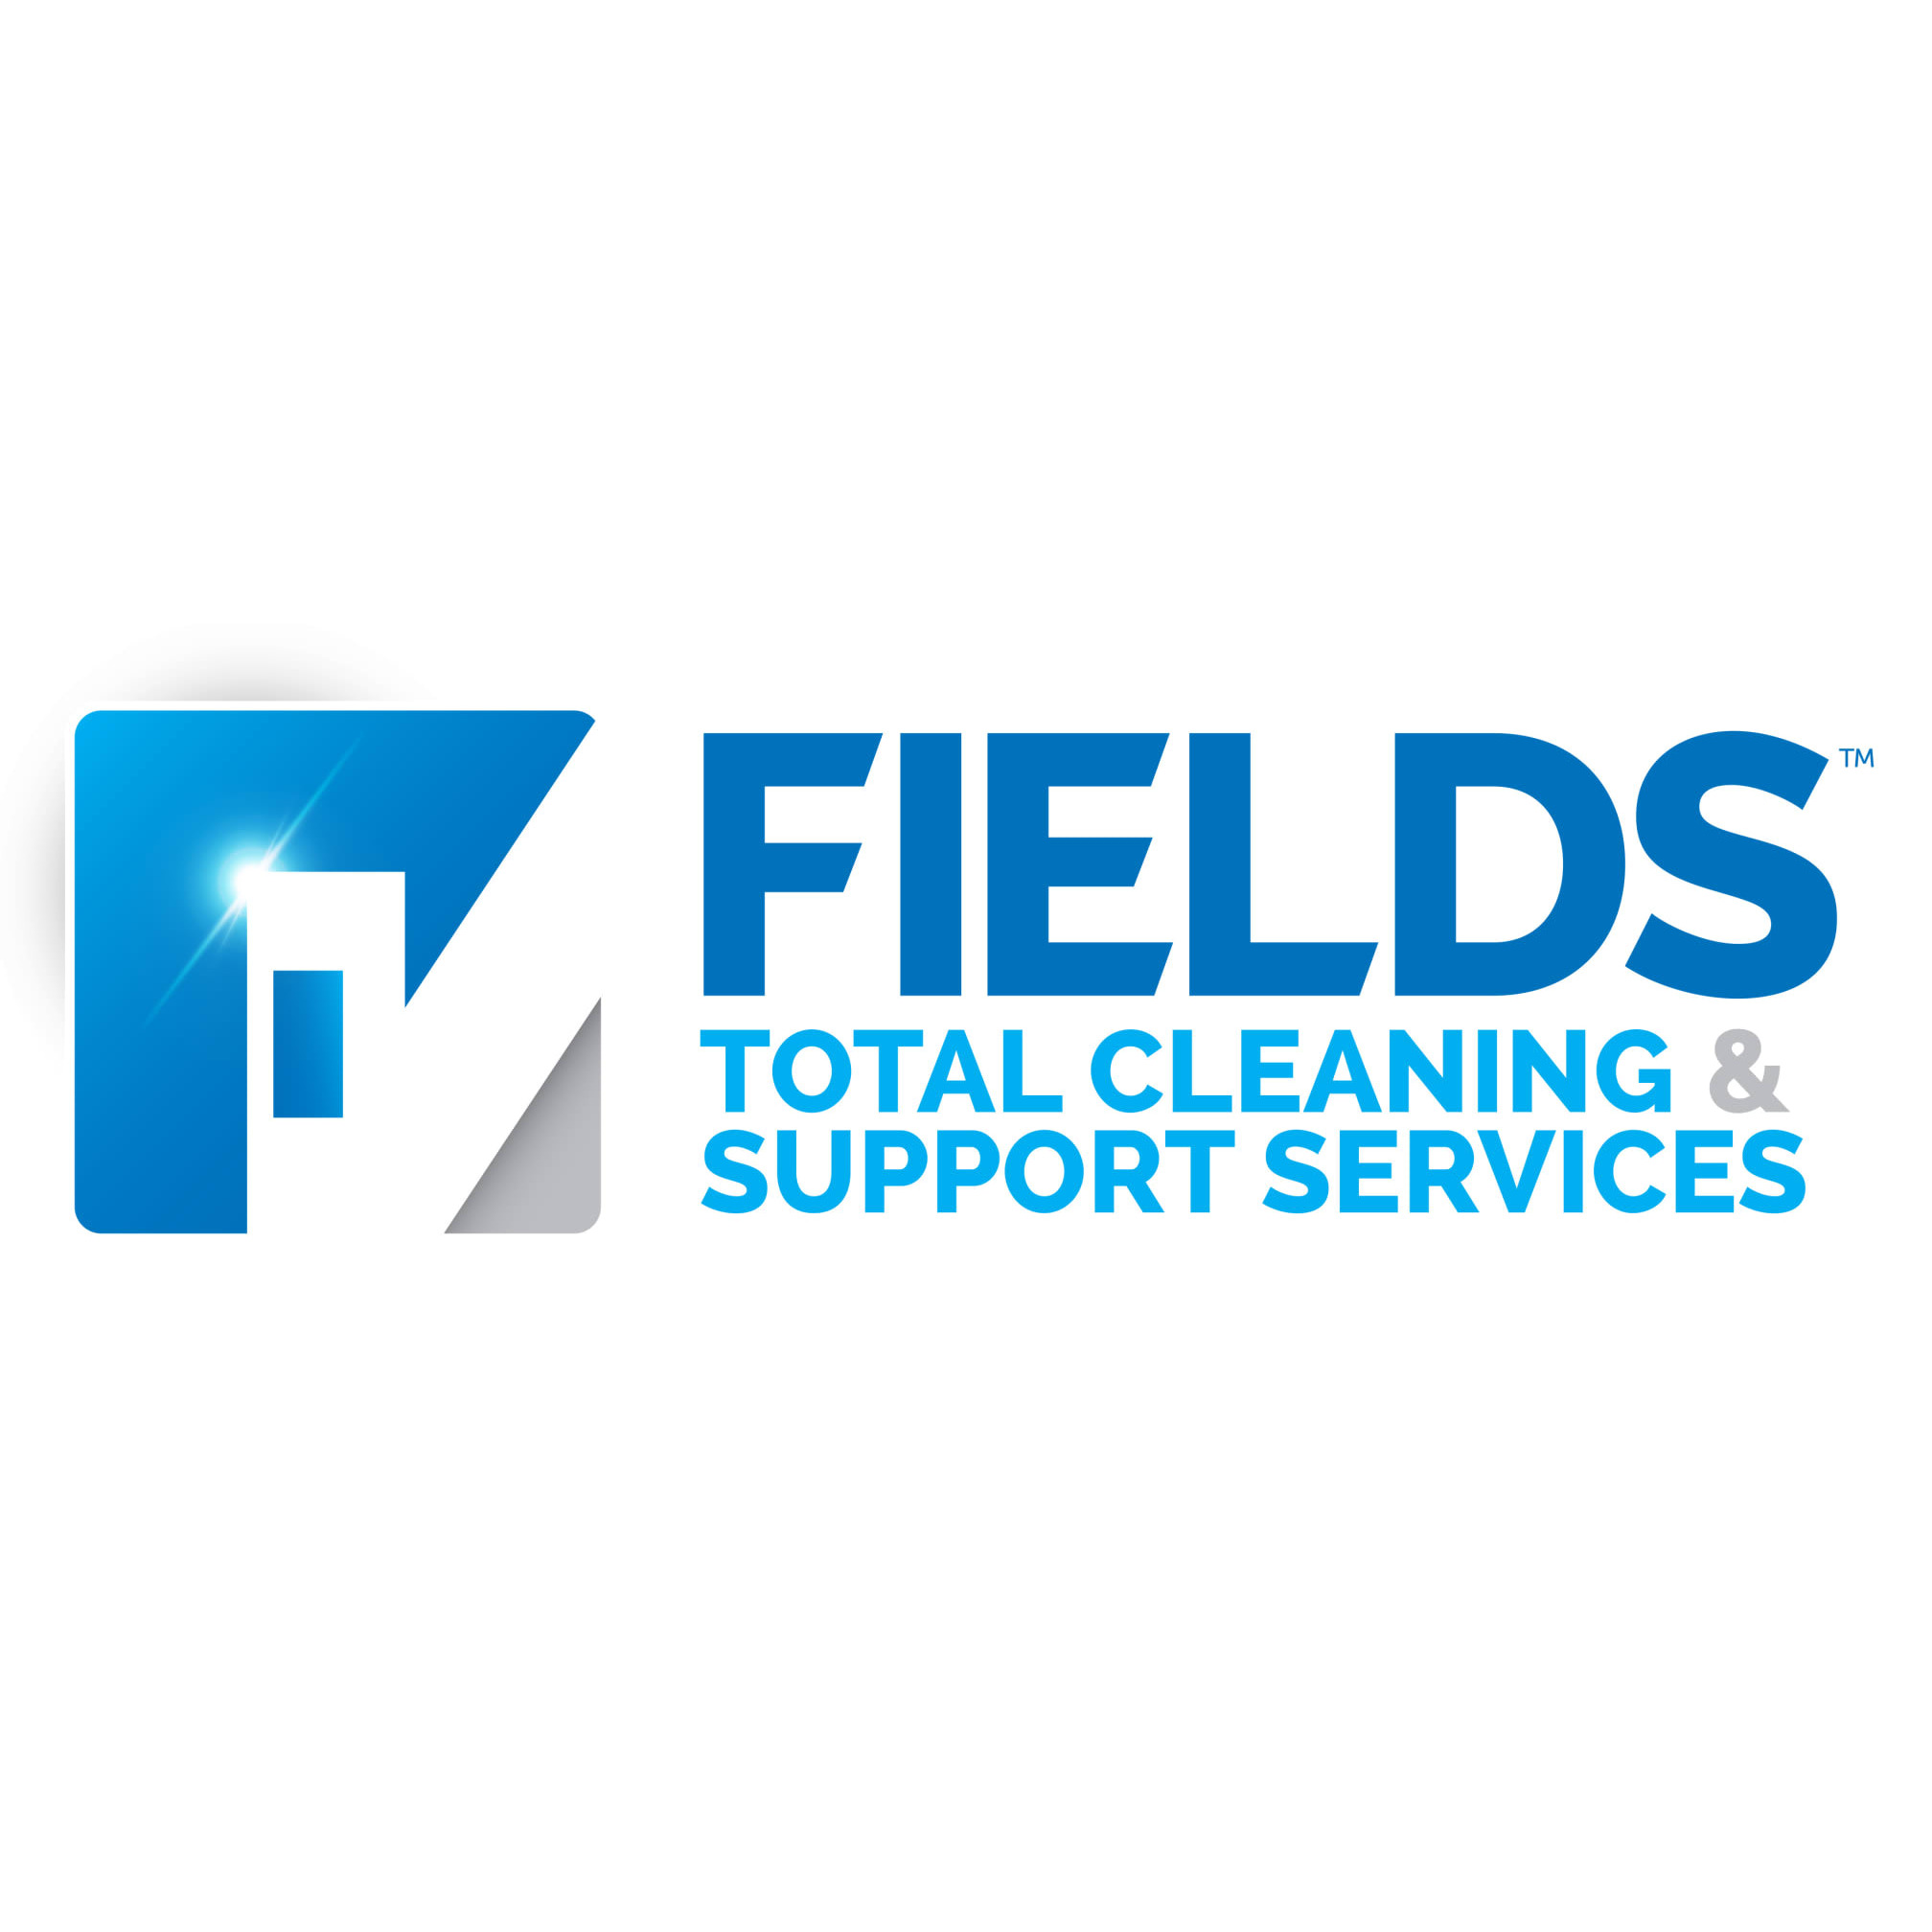 Fields Total Cleaning Ltd - Clacton-On-Sea, Essex CO15 4LU - 08009 550075 | ShowMeLocal.com